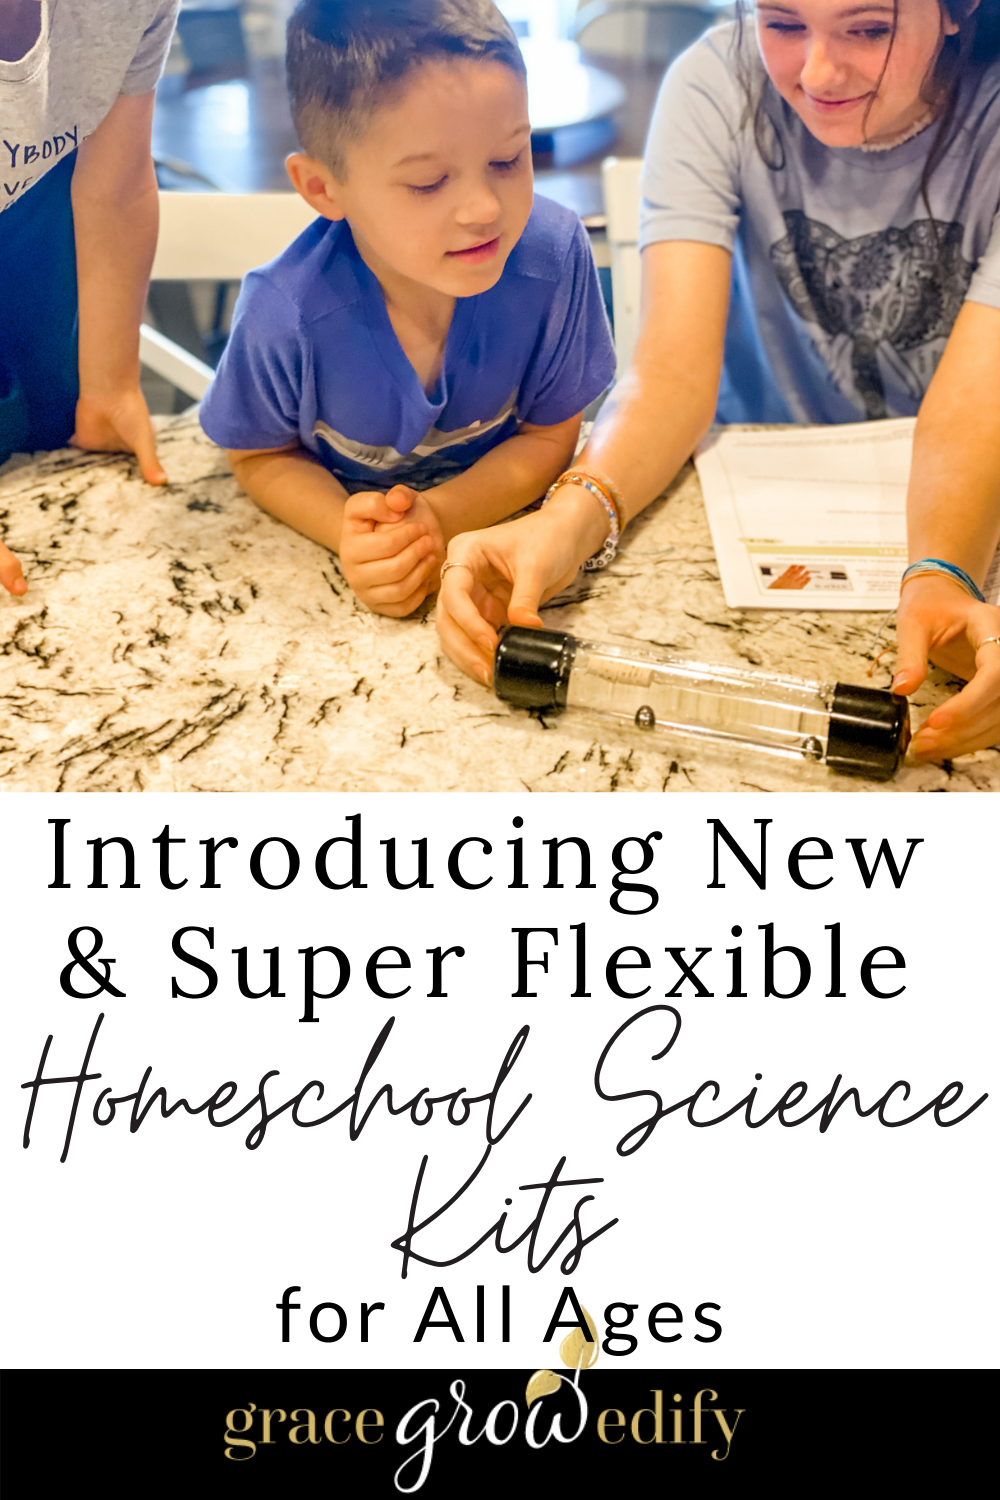 Check out these new homeschool science kits for kids of all ages! You will love how flexible they are and can be added to any curriculum. #homeschool #homeschoolscience #sciencekit #homeschoolsciencecurriculum #sciencecurriculum #homeschoolcurriculum